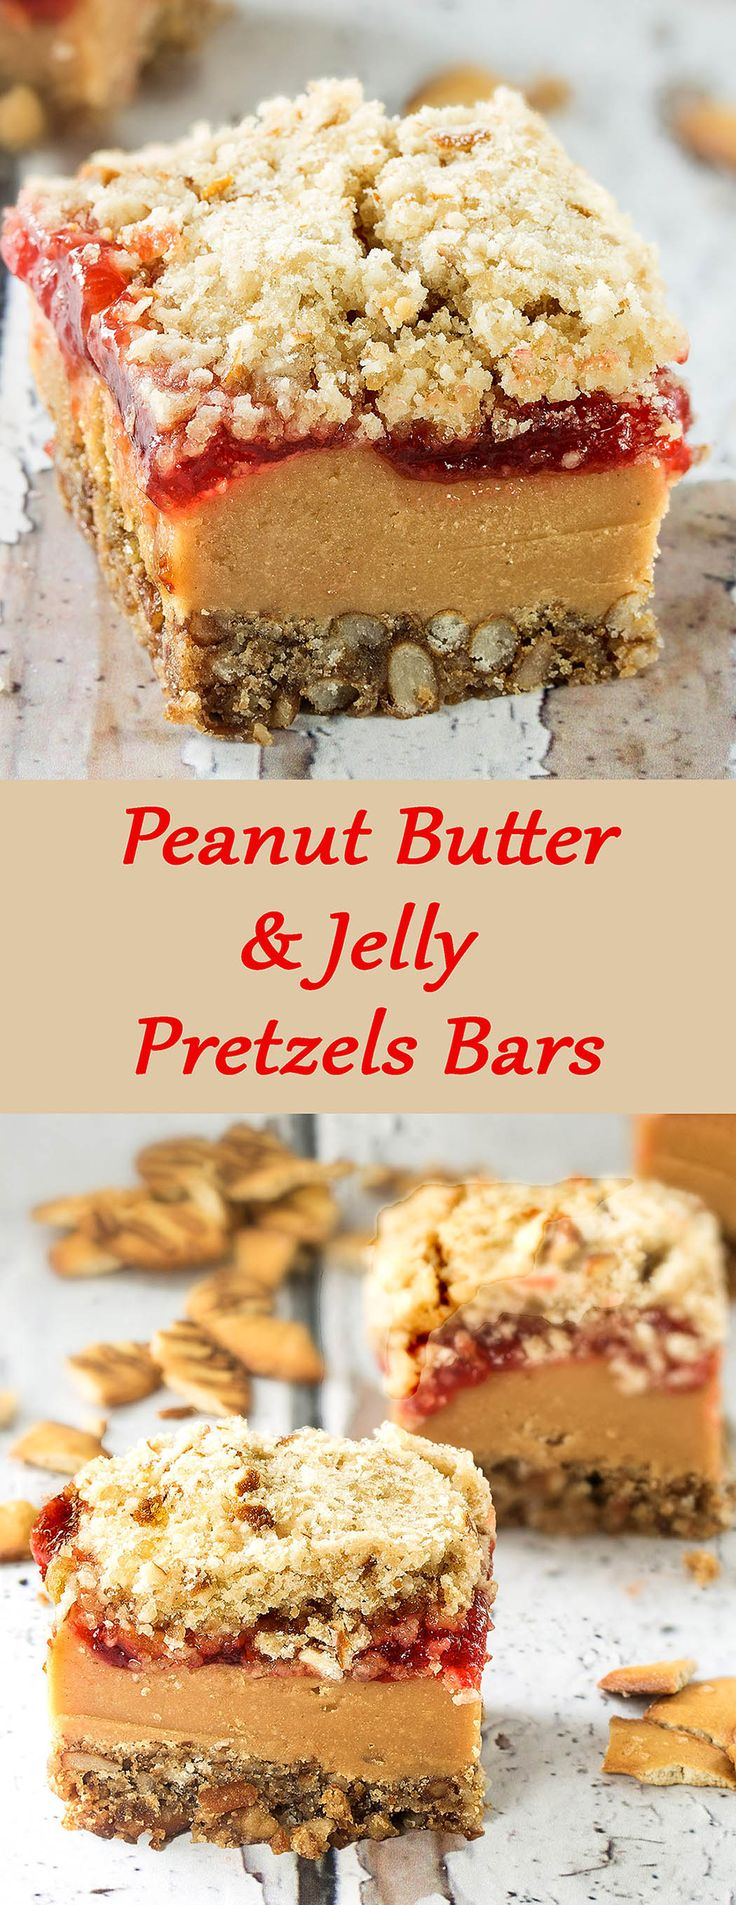 Delicious and easy-to-make bars, with a wonderful combination of sweet and salty. Peanut Butter & Jelly Pretzels Bars.  #Something Sweet - Winnie's blog